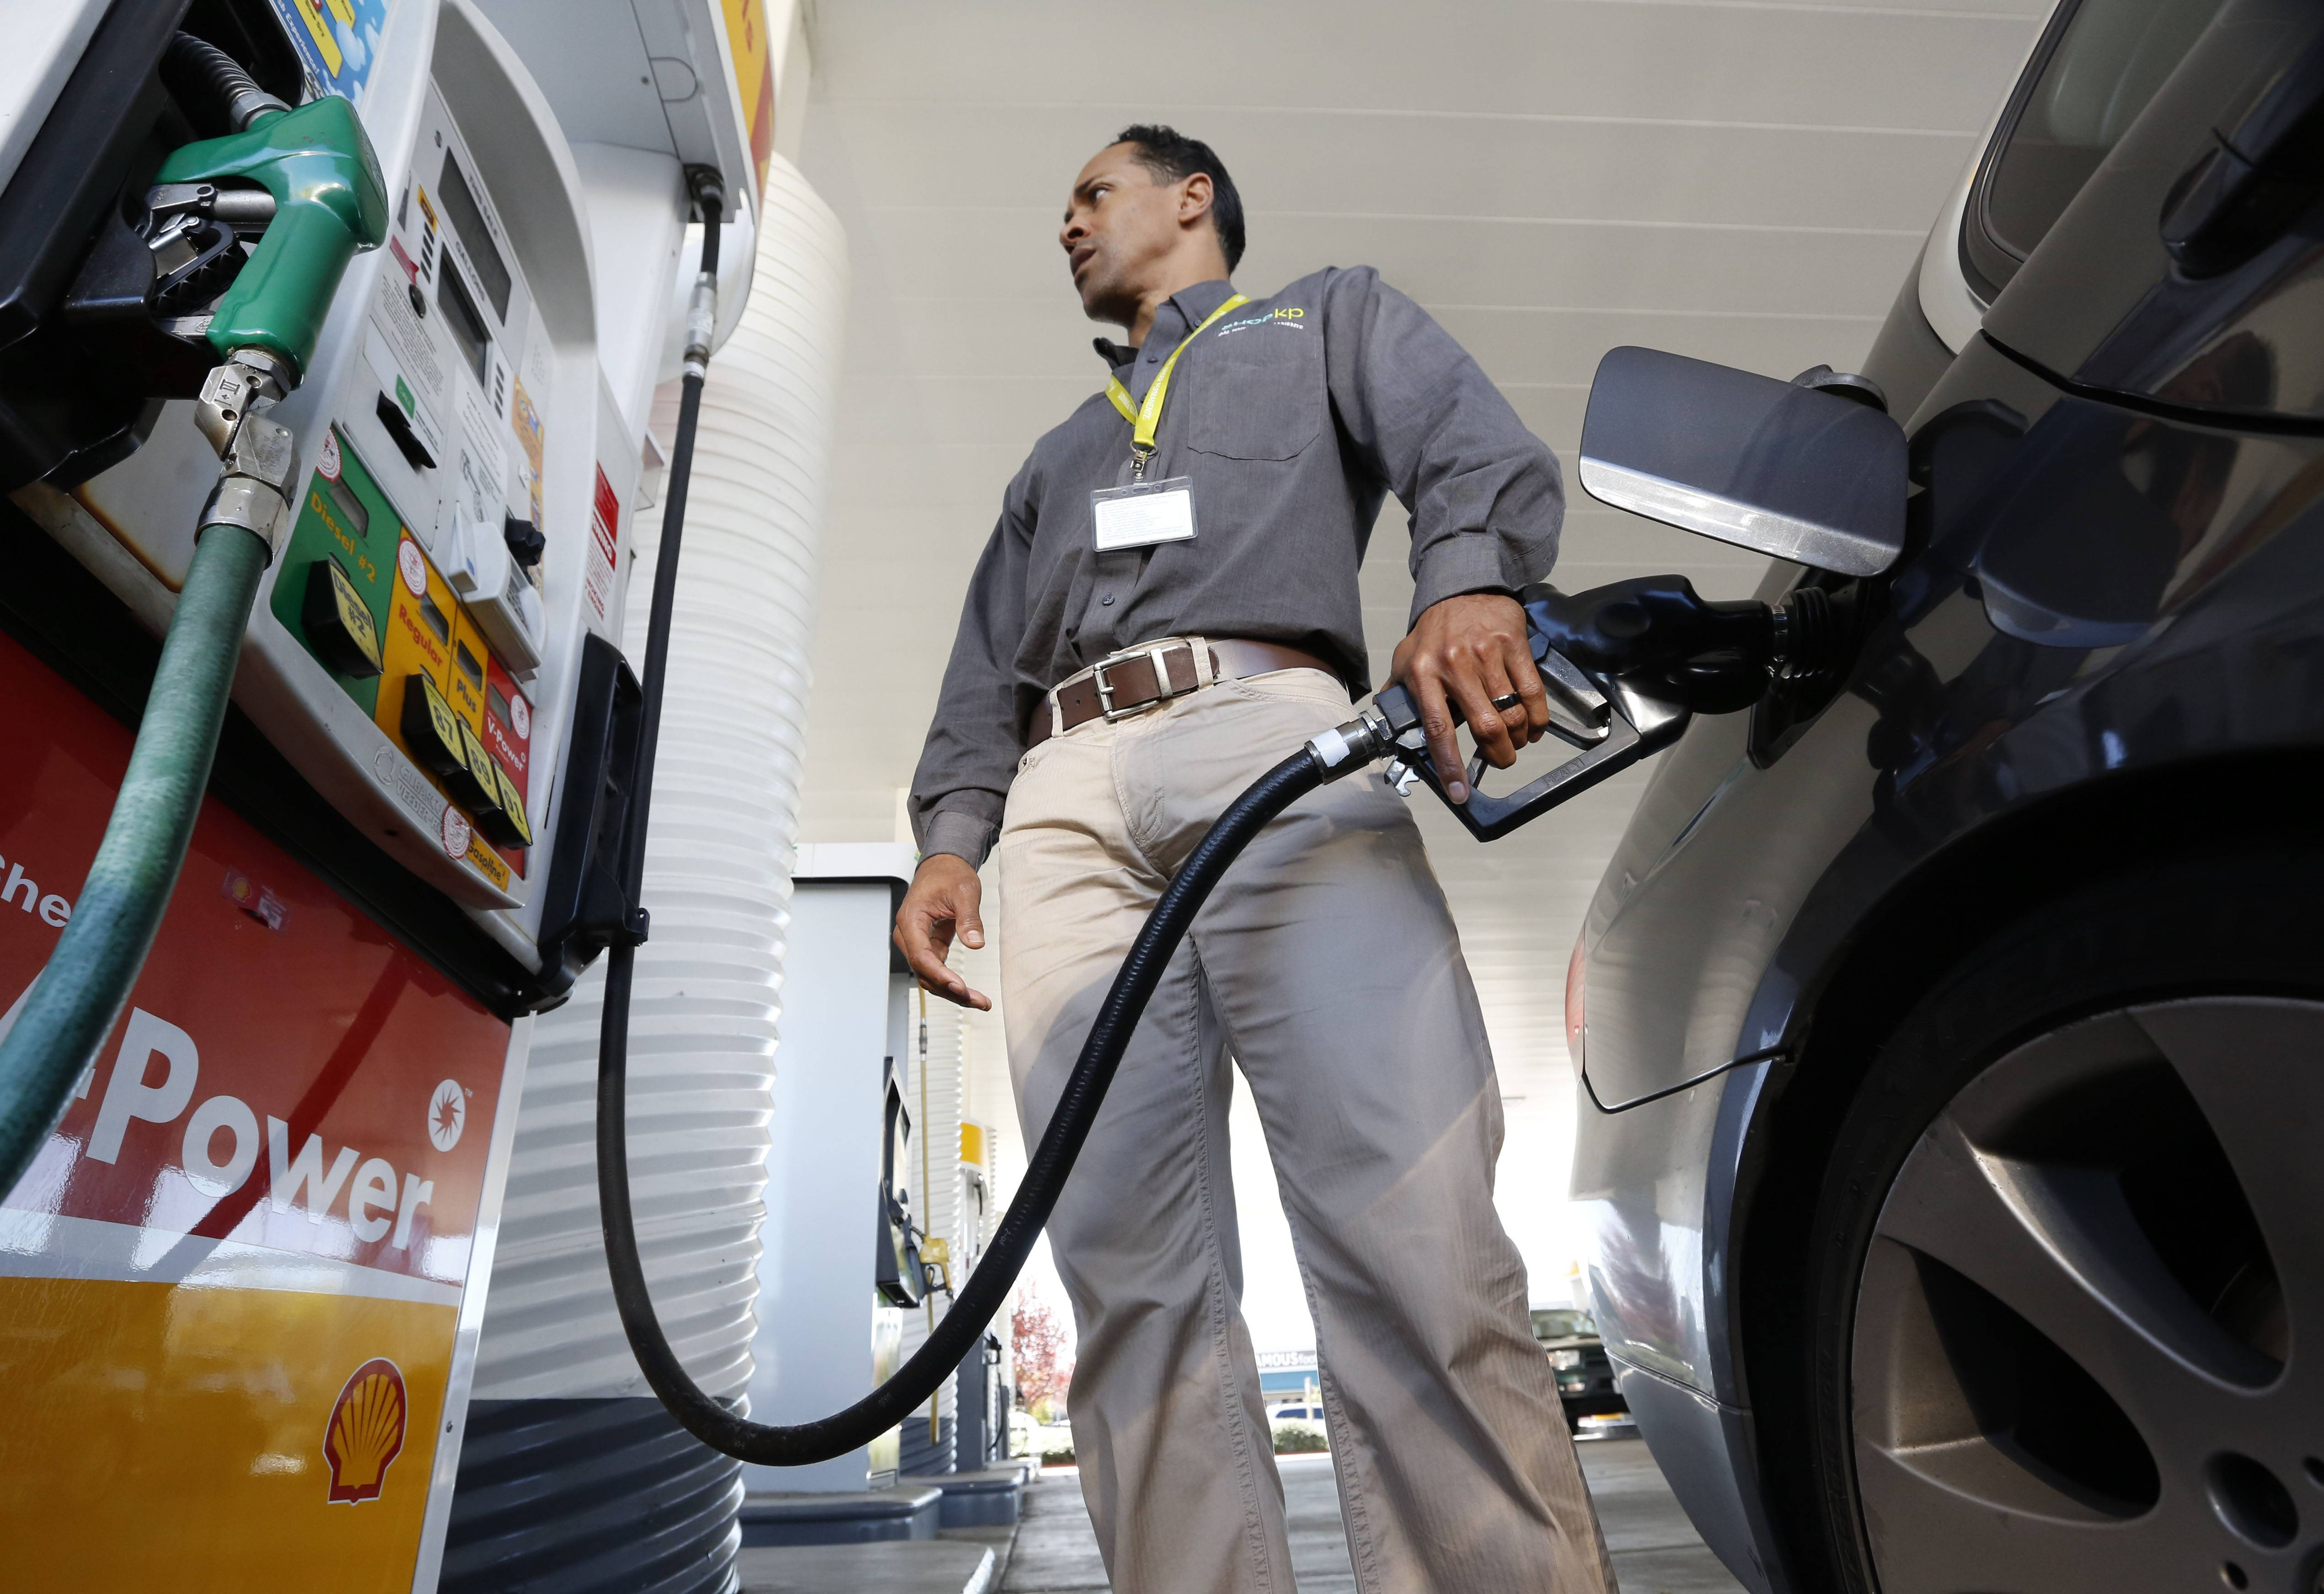 Drivers will get the slightest of breaks on gasoline prices this summer, according to the Energy Department. The national average price is forecast to fall -- by just one cent -- to $3.57 per gallon between April and September, the months when Americans do most of their driving.